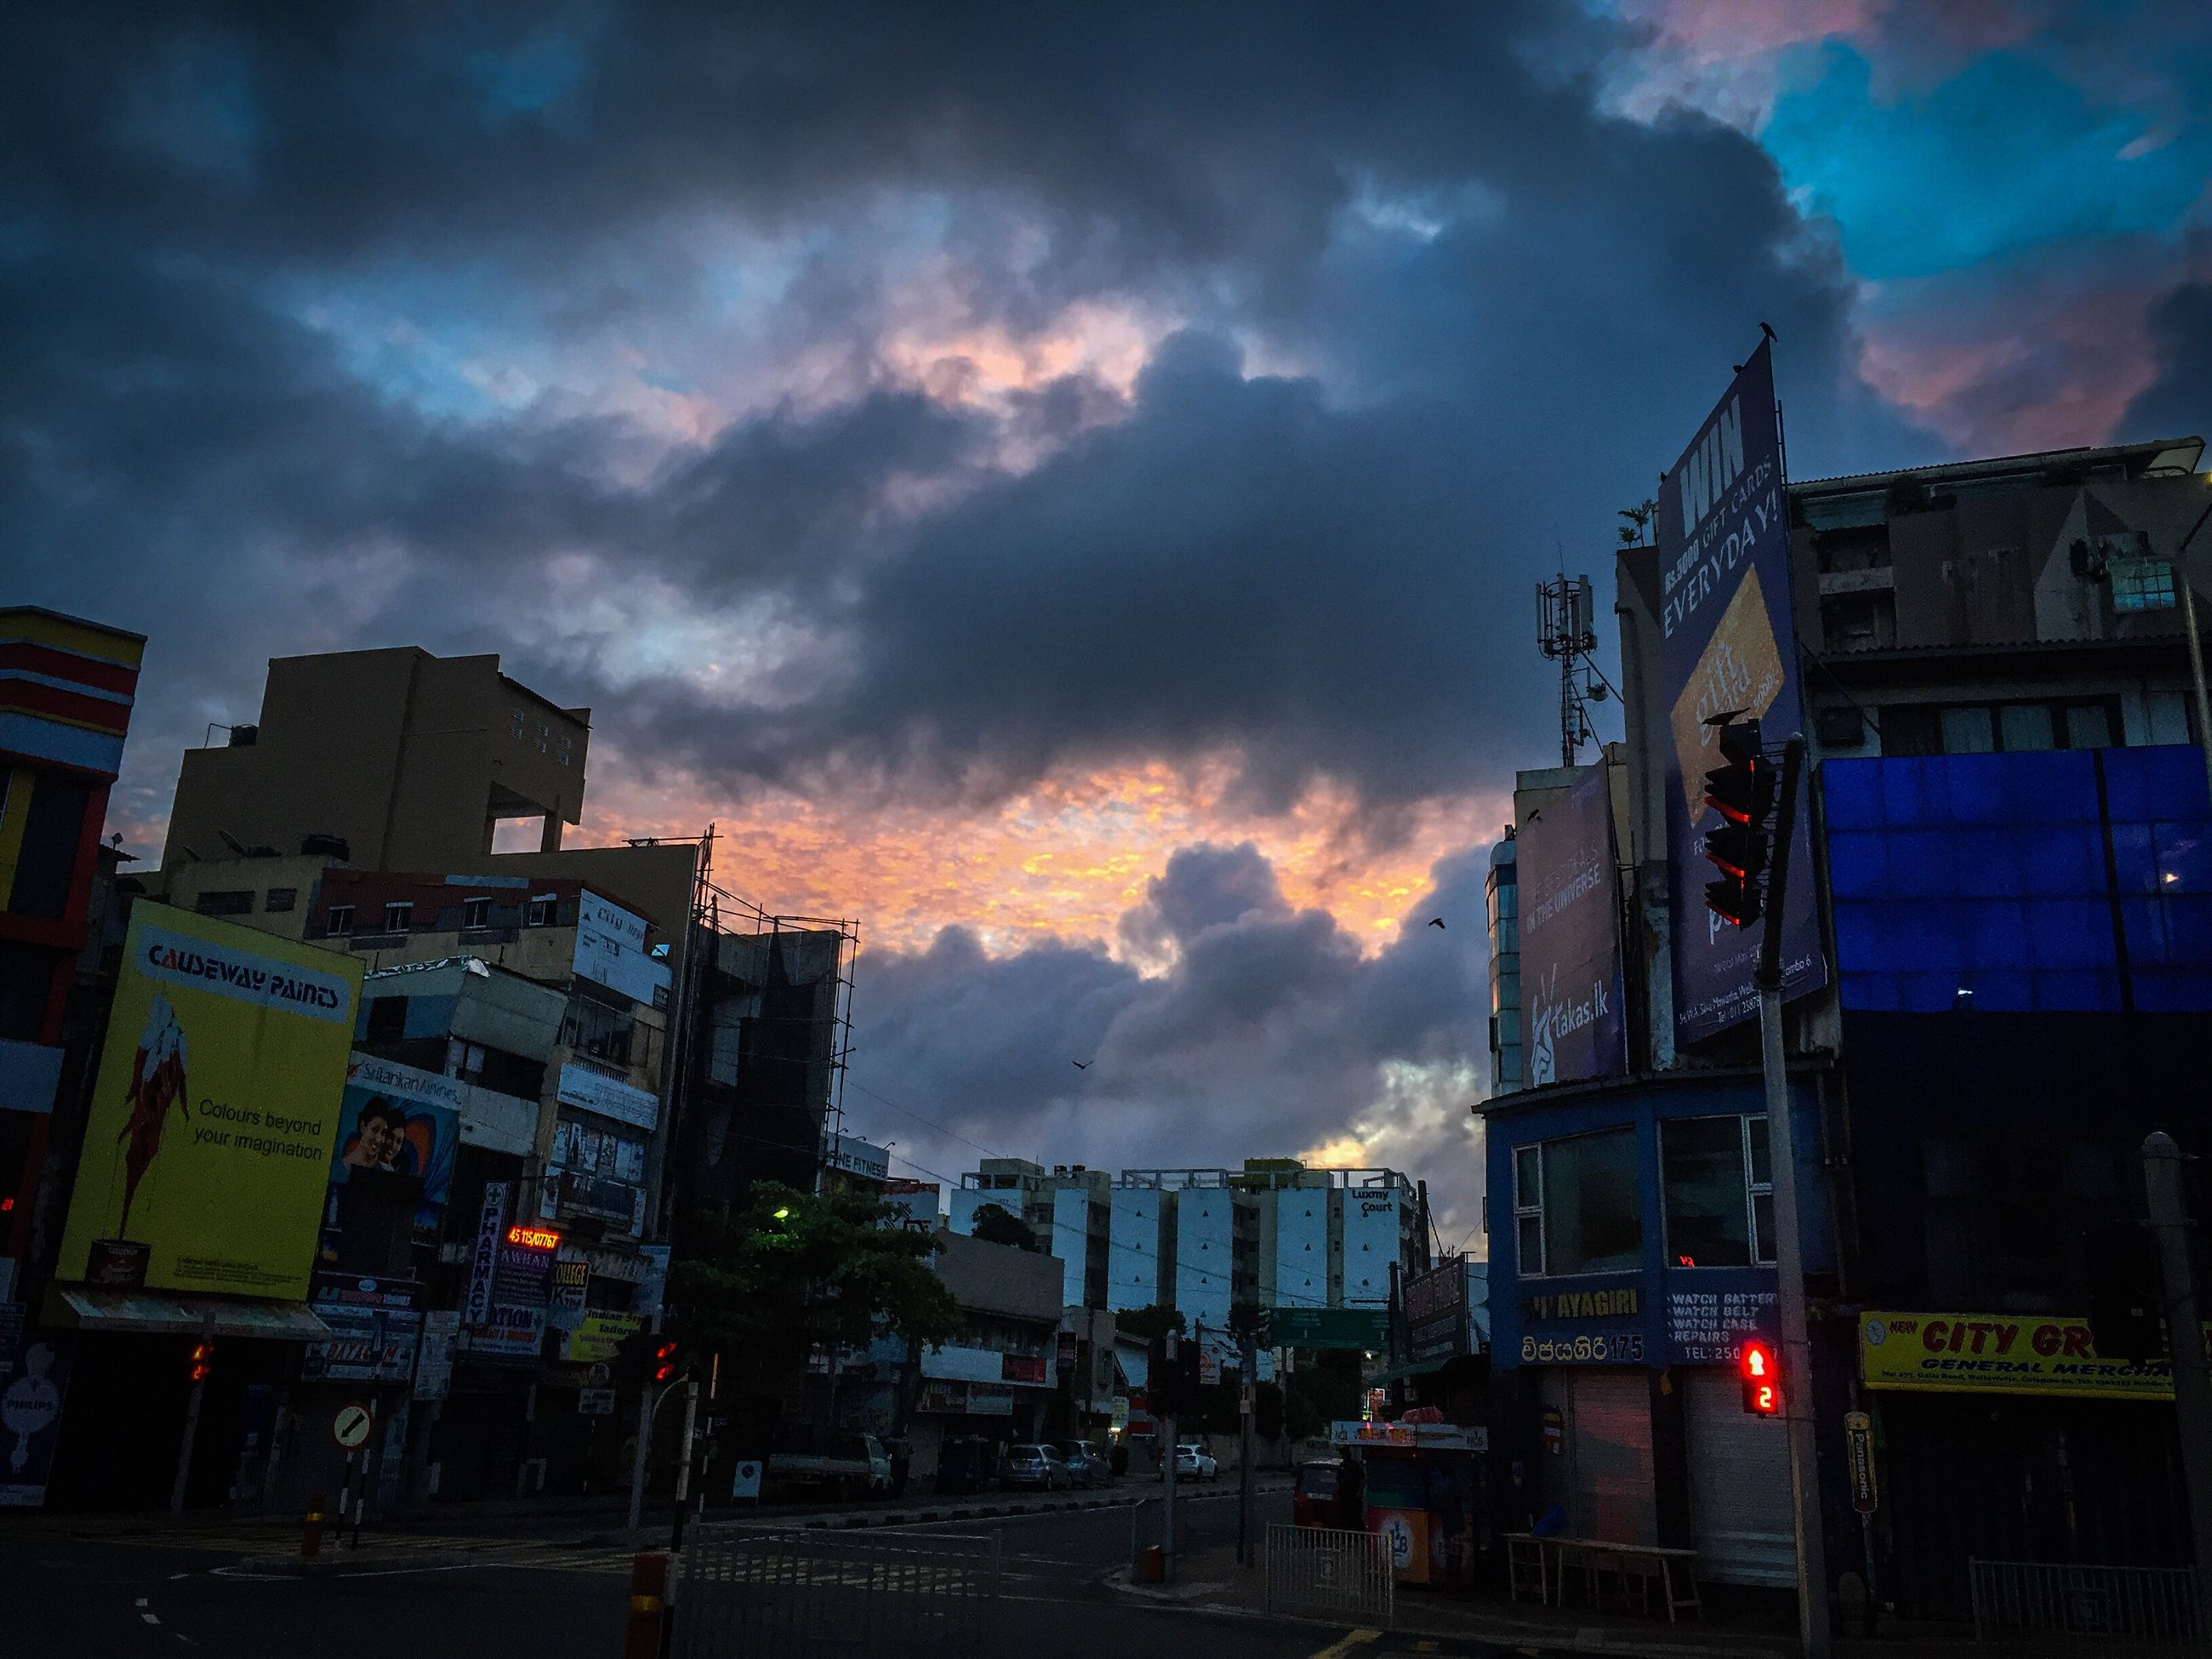 architecture, building exterior, built structure, city, sky, dusk, cloud, cloud - sky, illuminated, outdoors, tall - high, city life, cloudy, moody sky, tall, no people, building story